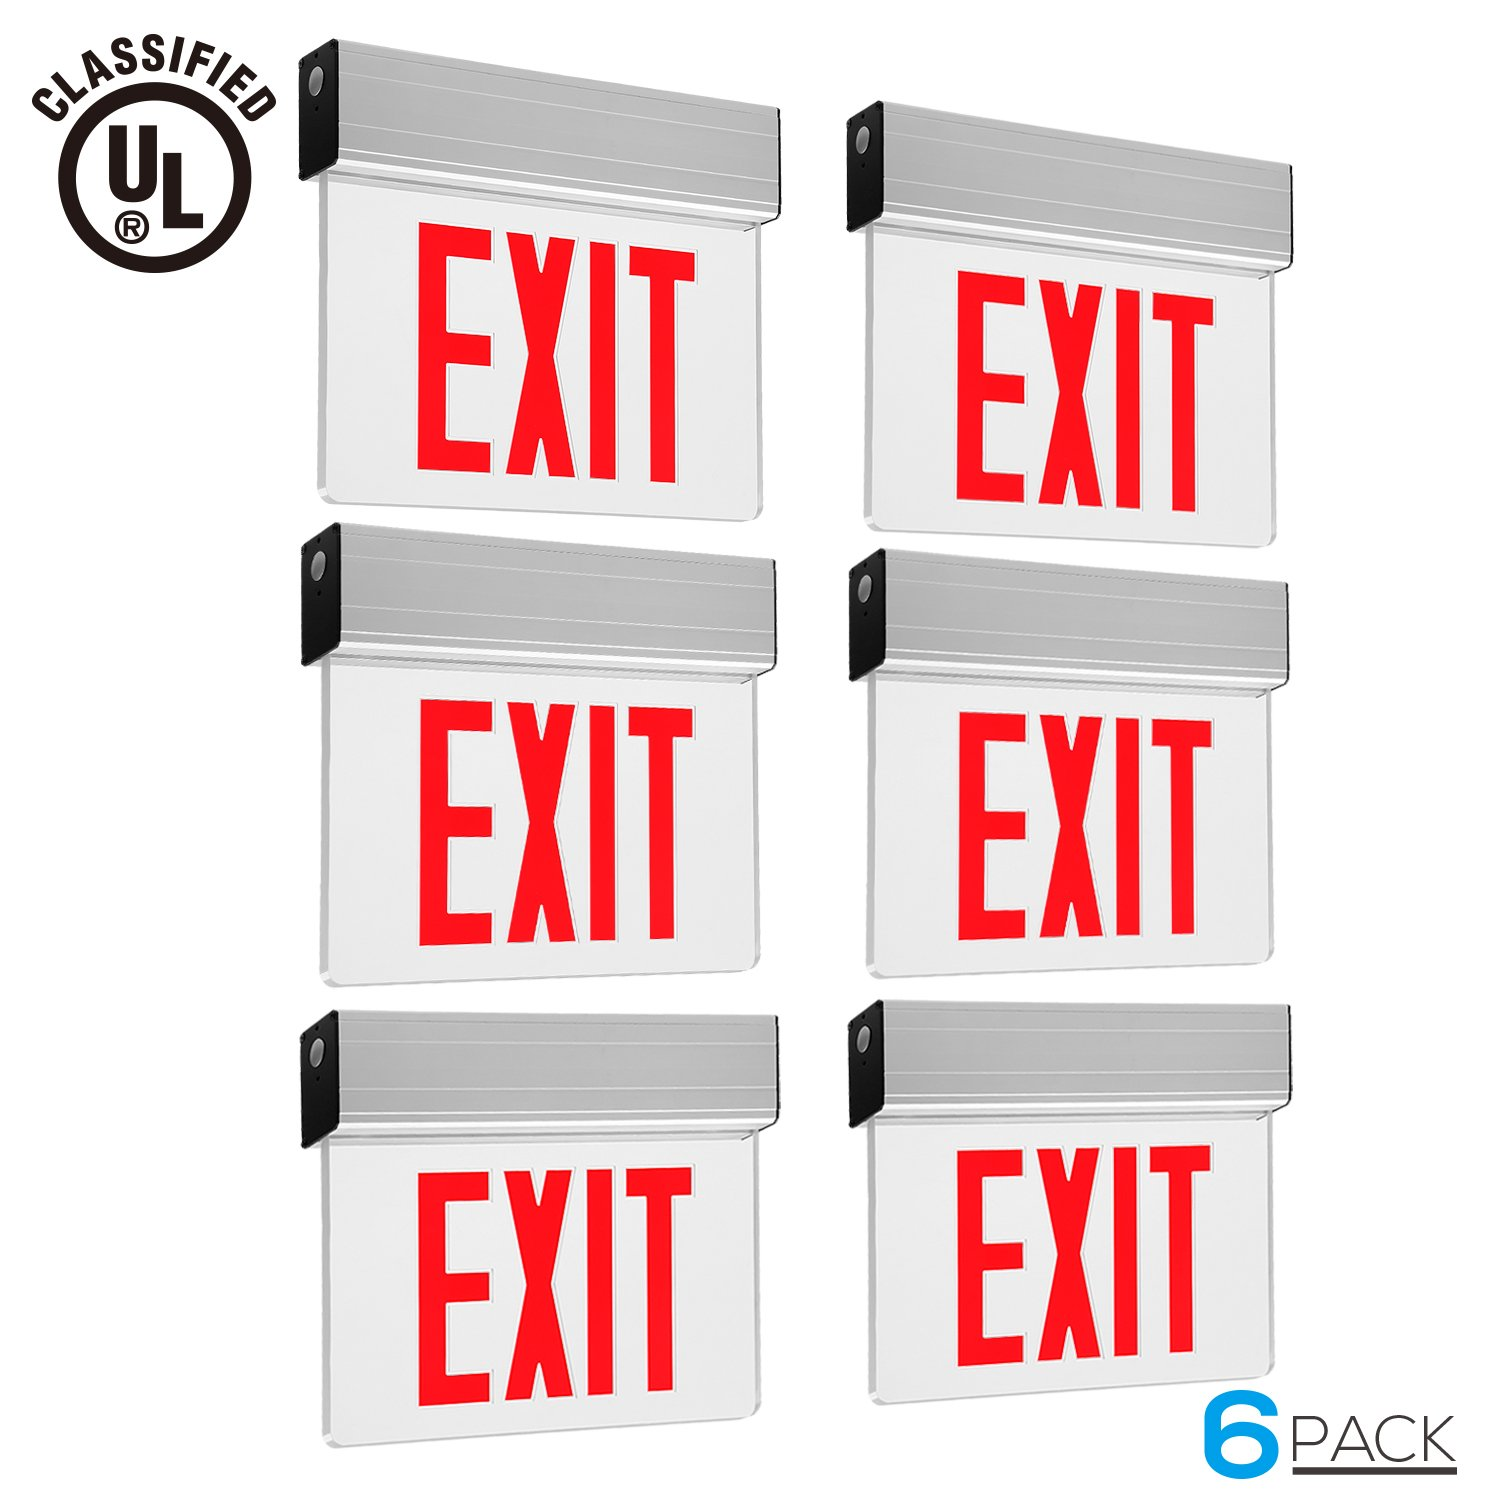 Red LED Exit Sign, UL-Listed Emergency Light, AC 120V/277V, Battery included, Single/Double Face, Ceiling/Side/Back Mount Sign Light, for Hotels, Restaurants, Shopping Malls, Hospitals, Pack of 6